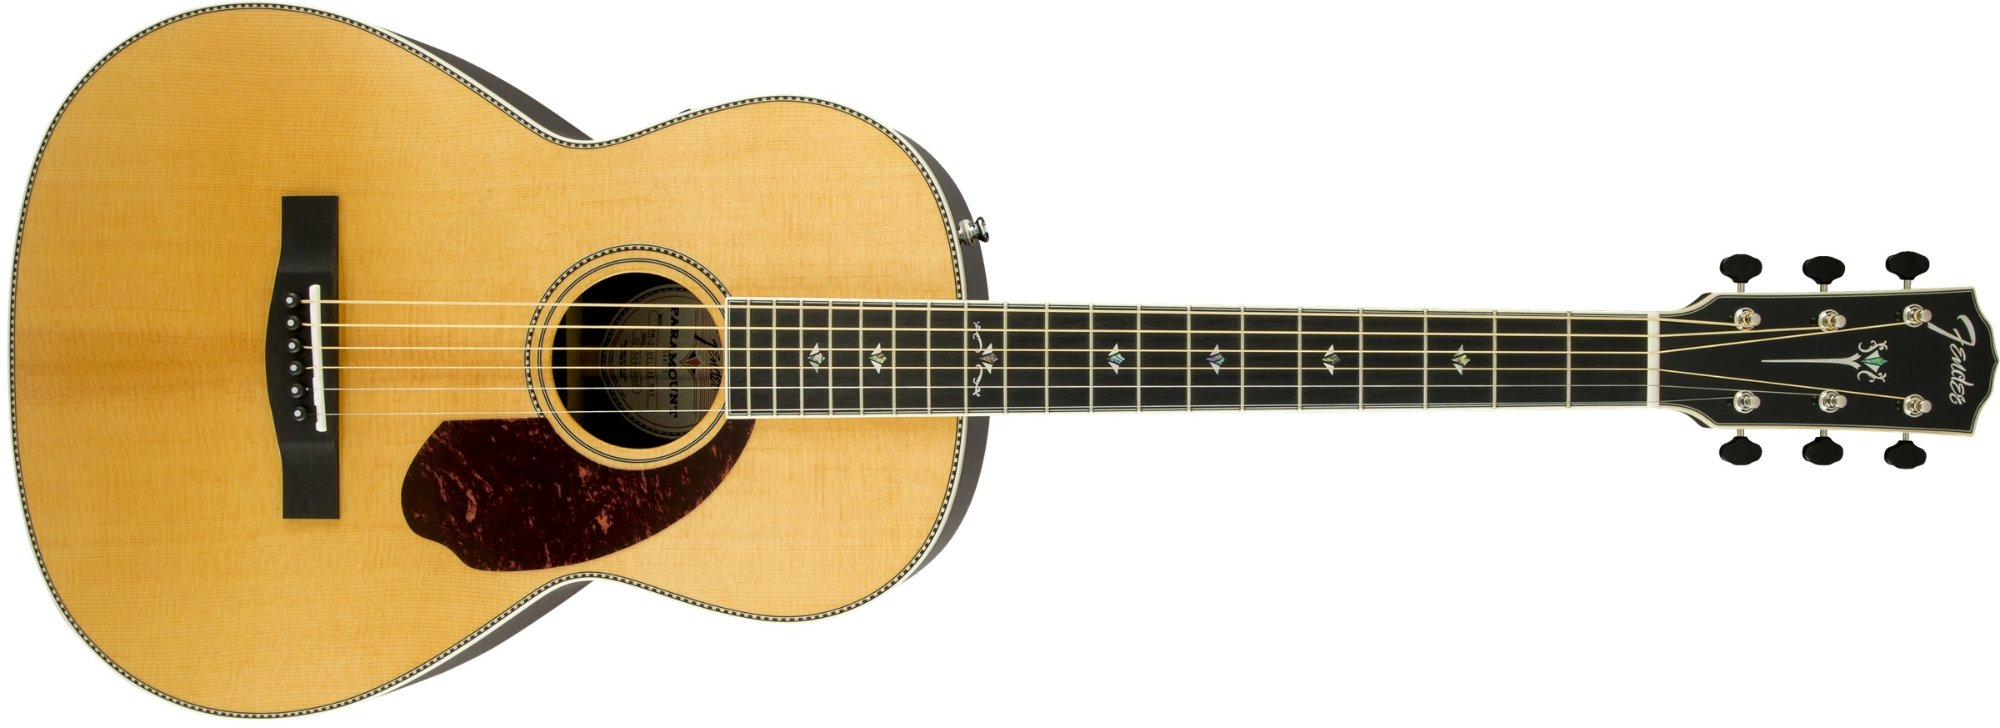 Paramount Series Parlor Acoustic Guitar with Ebony Fingerboard